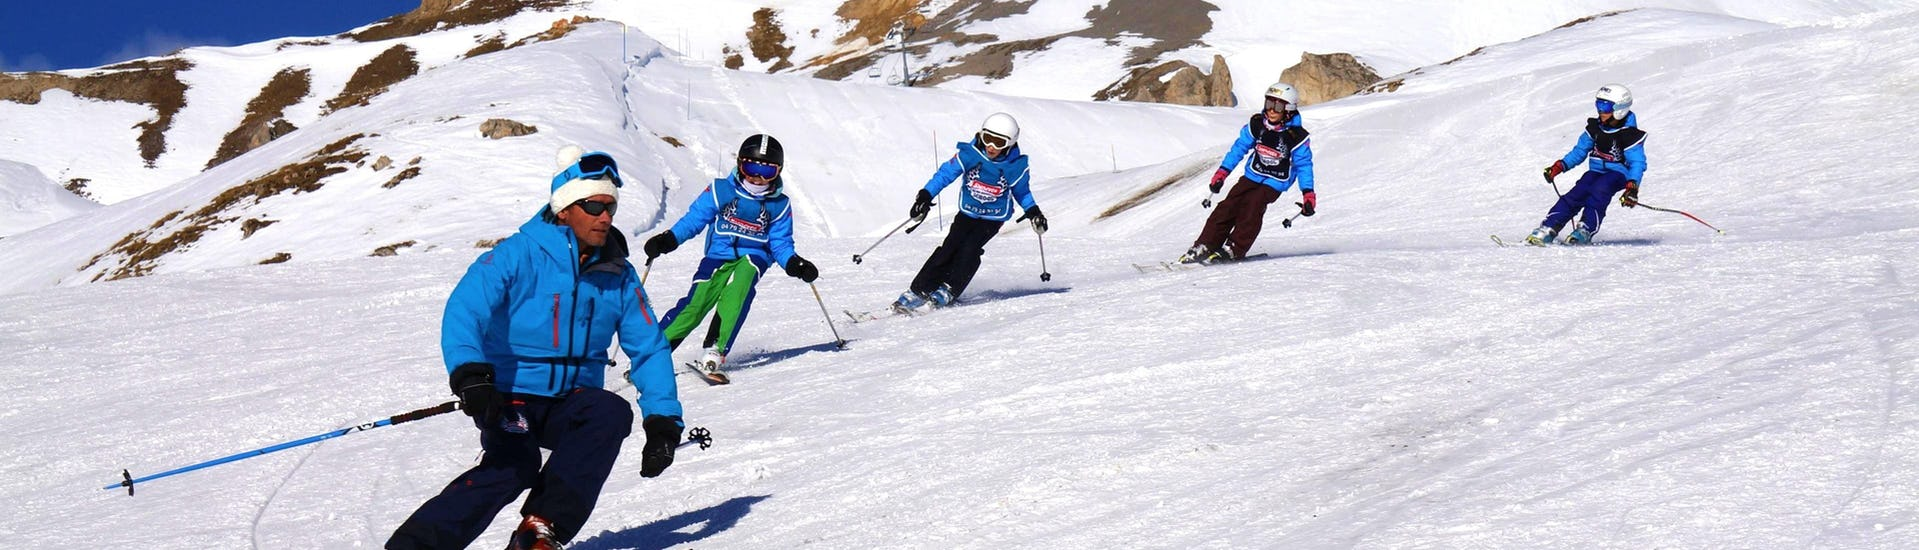 "Young skiers are following their instructor from the ski school Snocool on a snowy slope during their Kids Ski Lessons ""Pop 6"" (10-17 years) - Advanced."